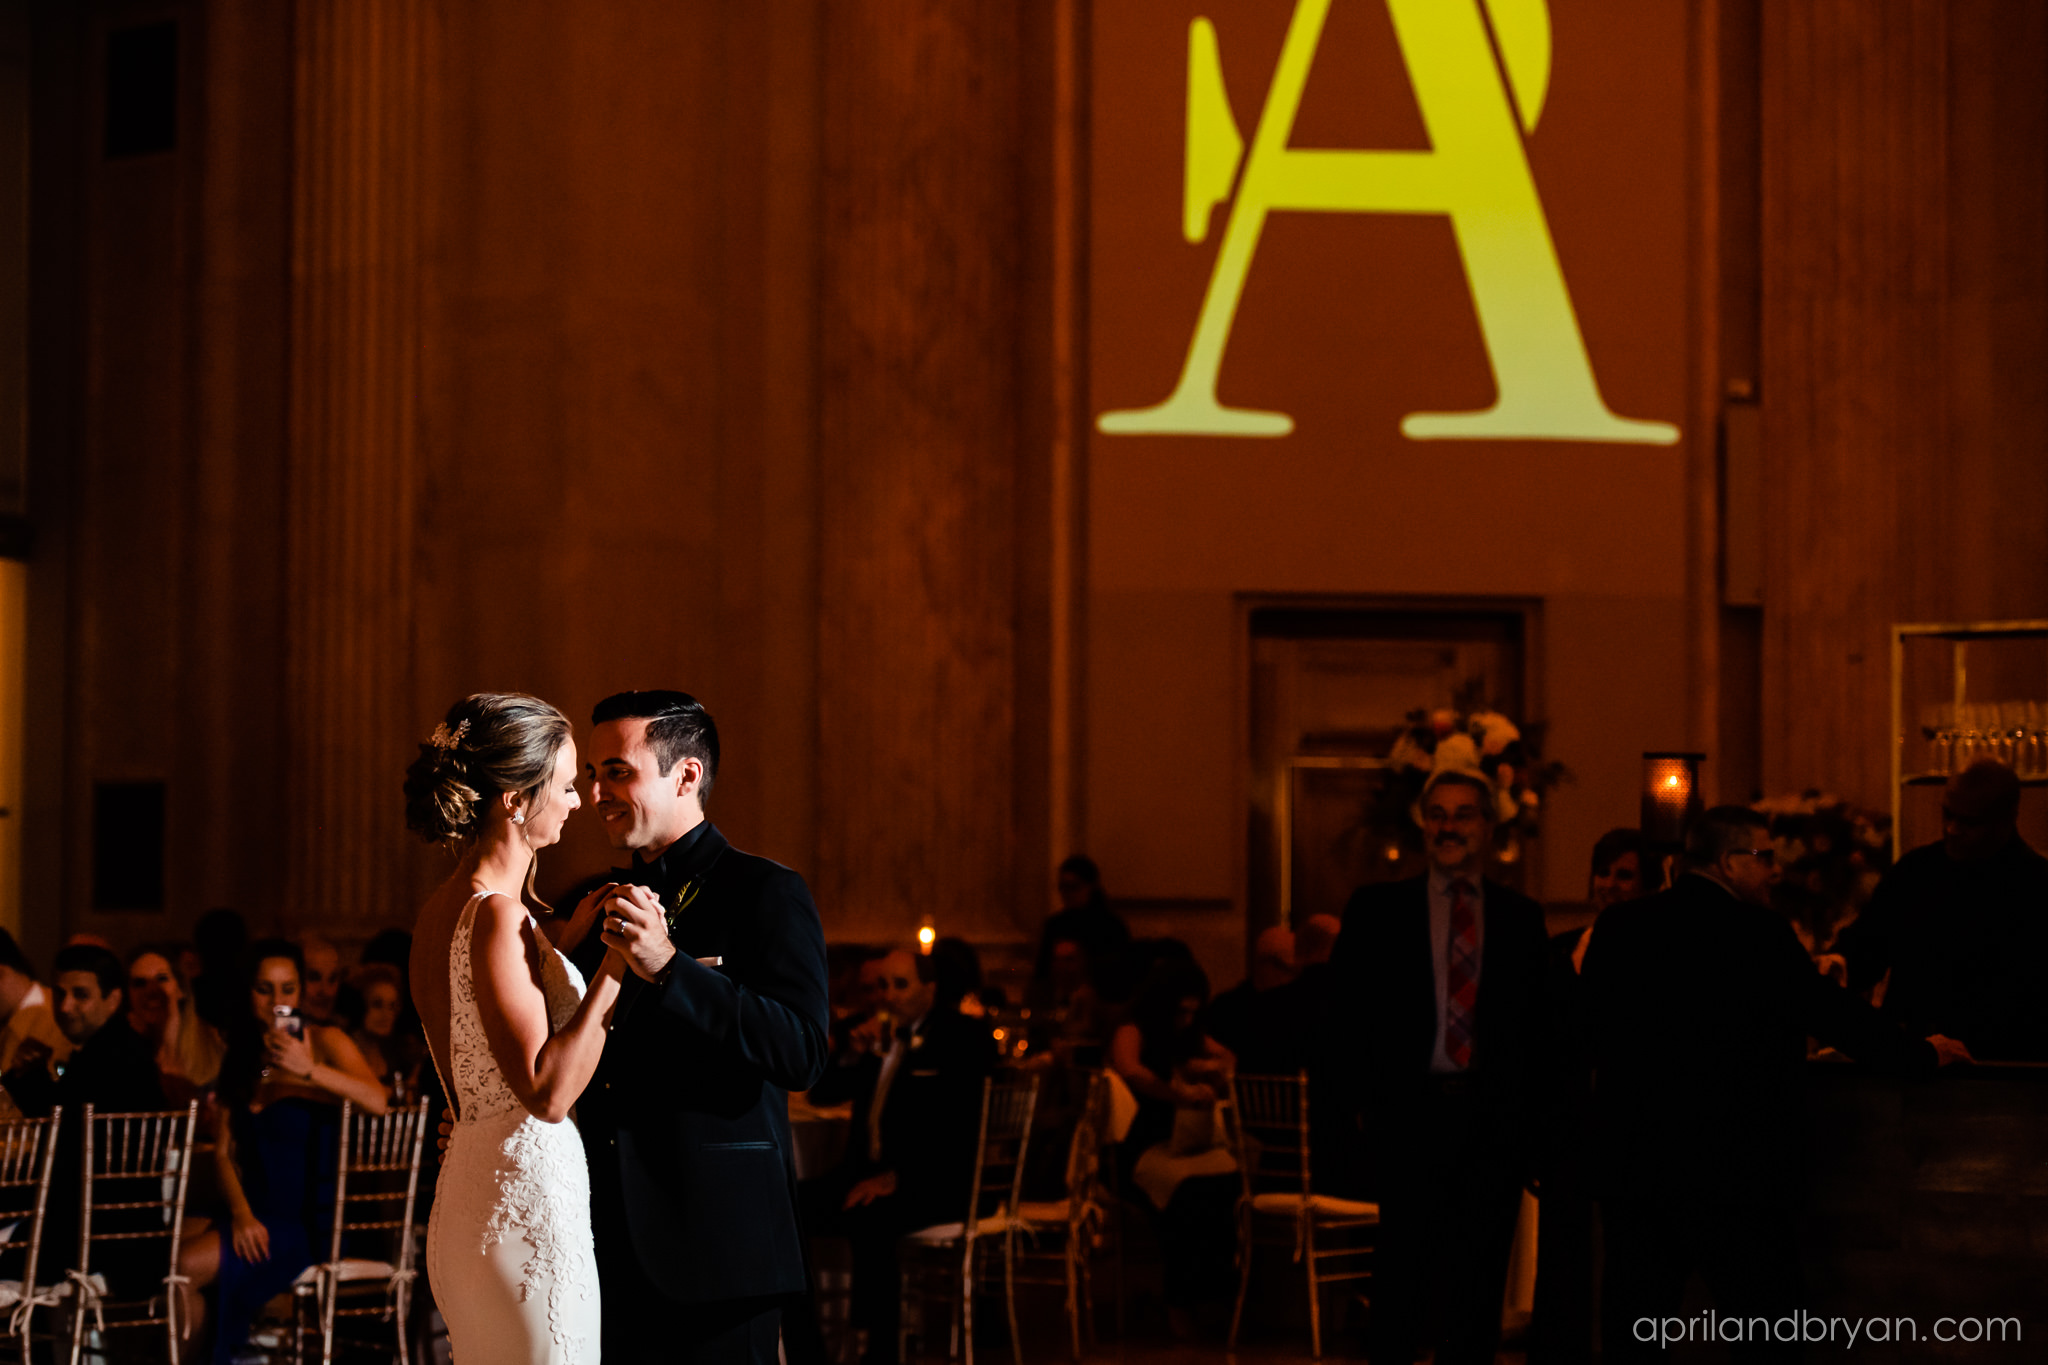 The first dance of bride and groom symbolizes the first thing they do together after nuptials. The Franklin Institute held their celebration, while April & Bryan Photography captured it beautifully. Featured on Dream Weddings.